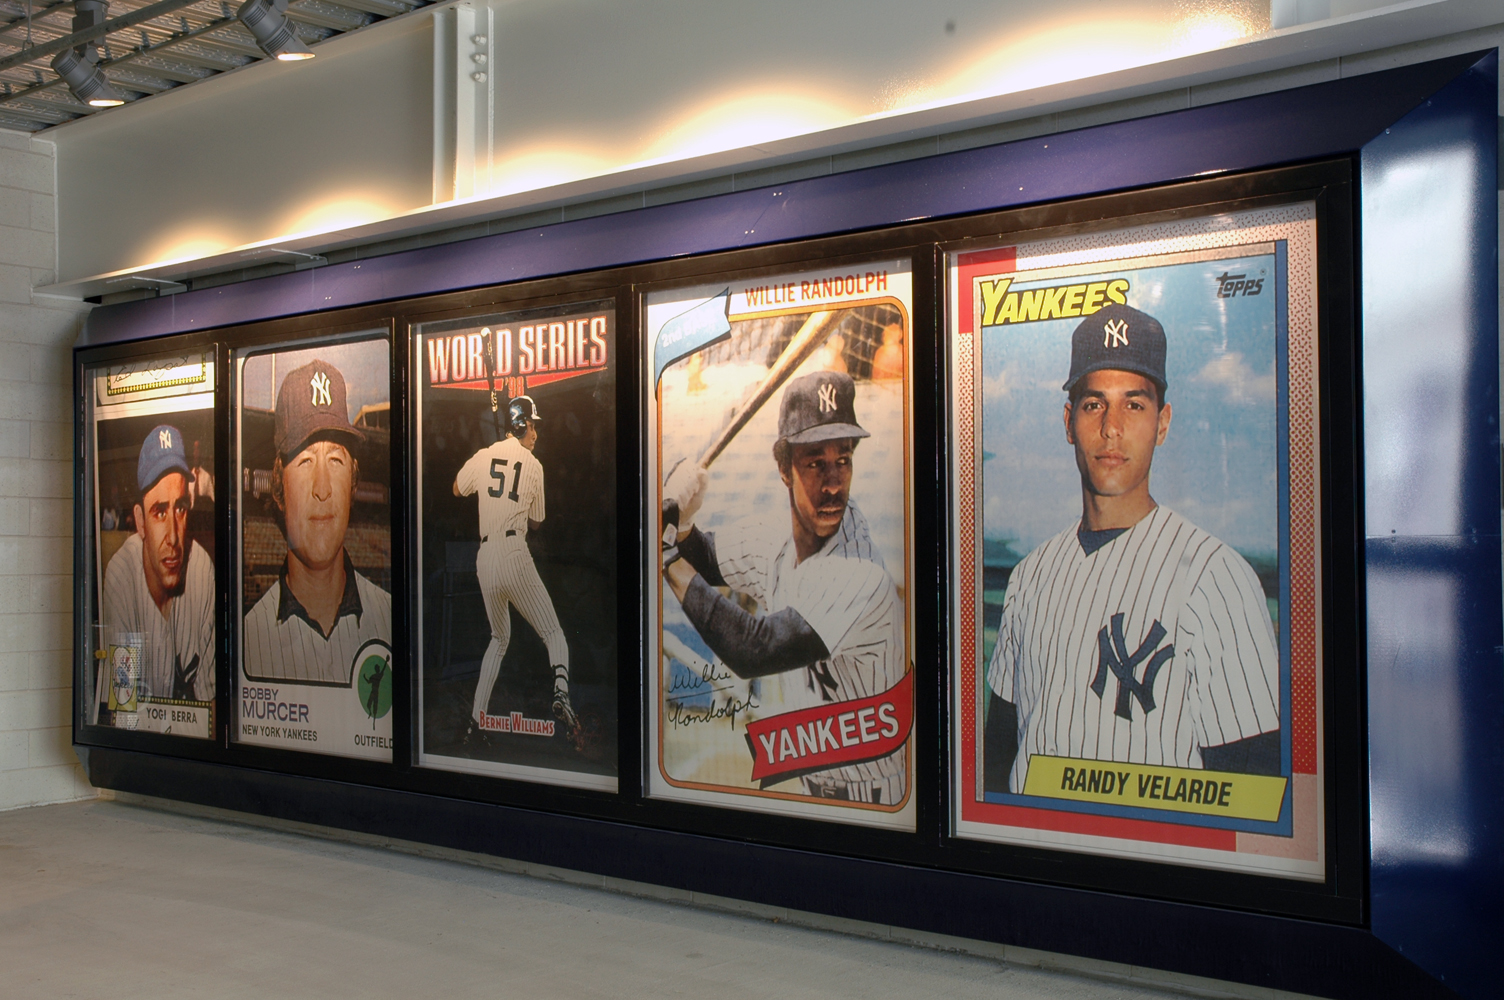 Project image 3 for Stadium Graphics, New York Yankees